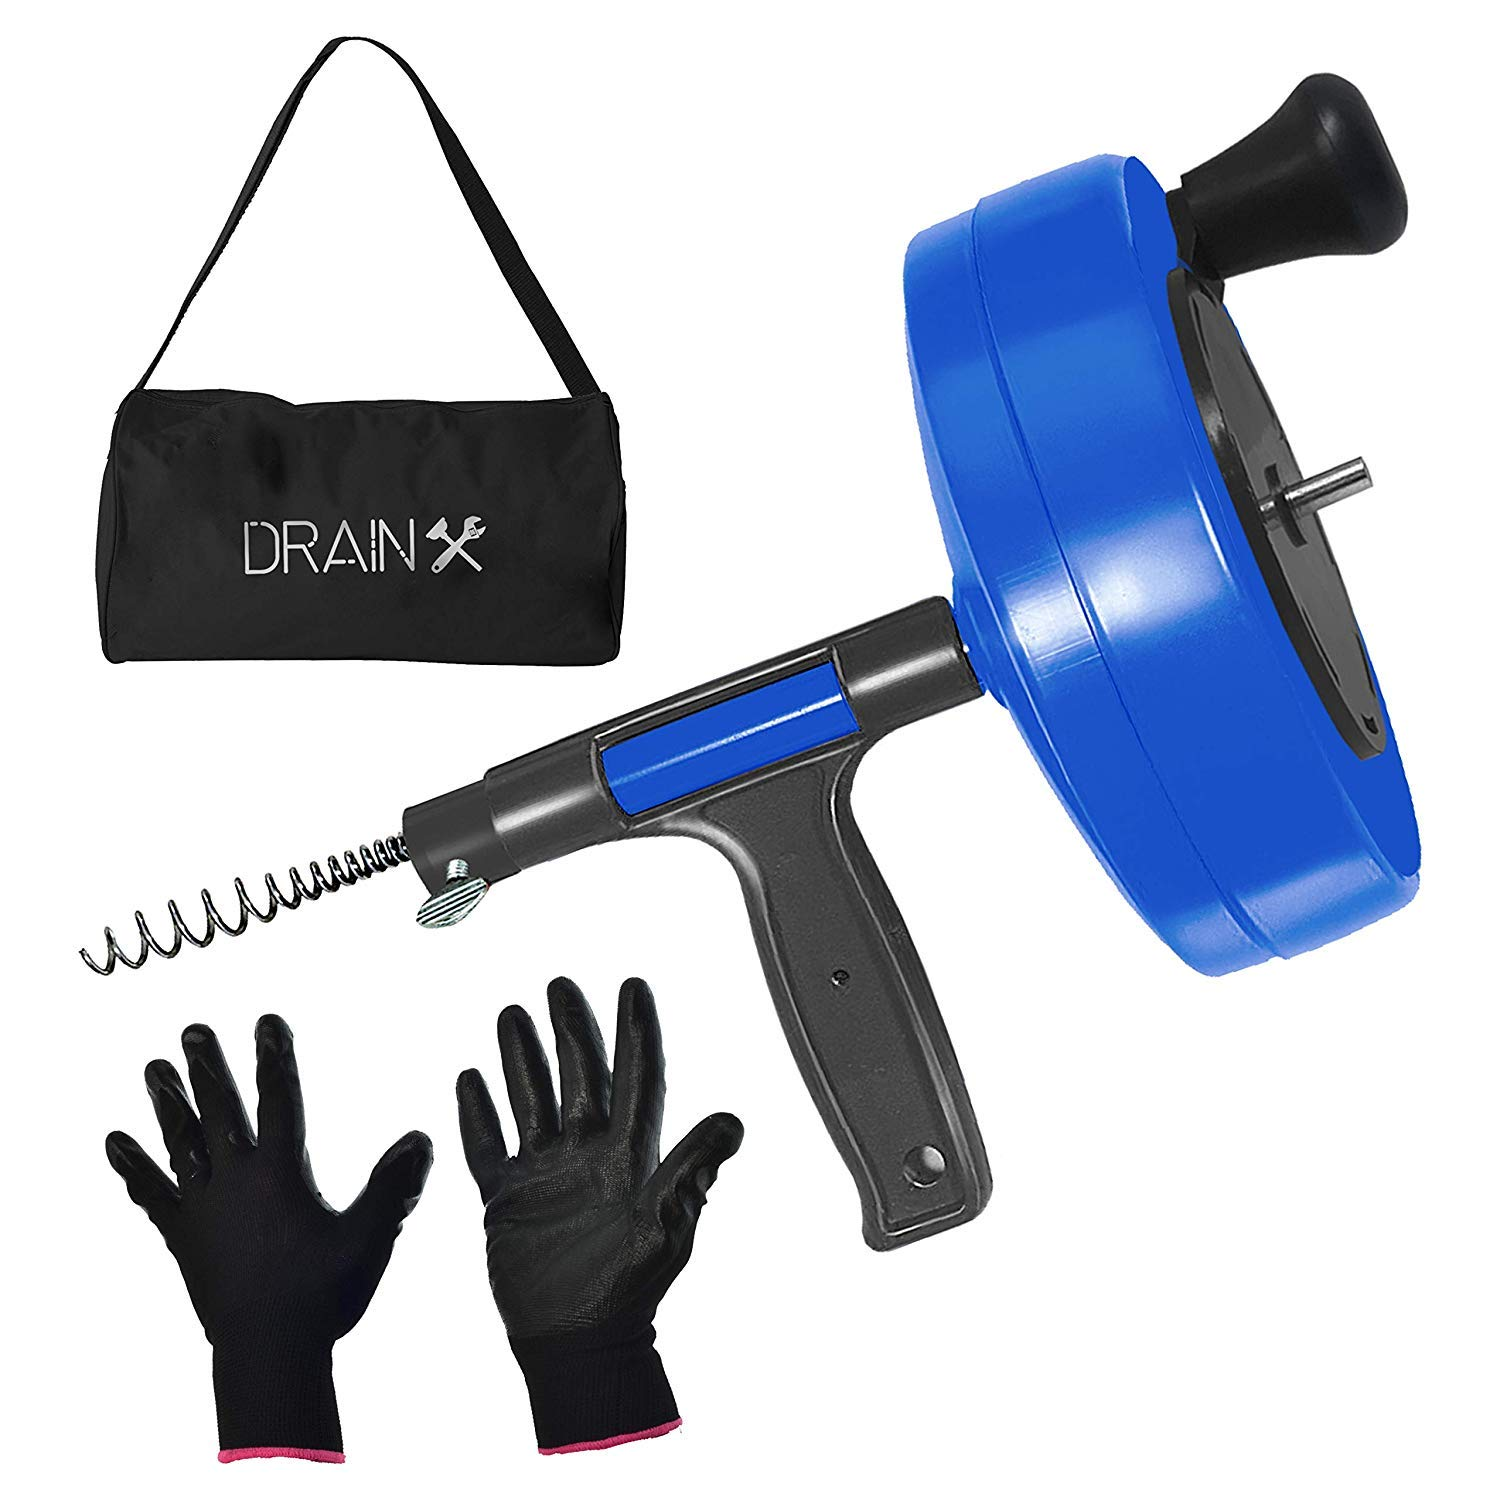 DrainX Power Pro 35-FT Steel Drum Auger Plumbing Snake with Drill Adapter | Heavy Duty Drain Snake Cable with Work Gloves and Storage Bag- Blue. by DrainX